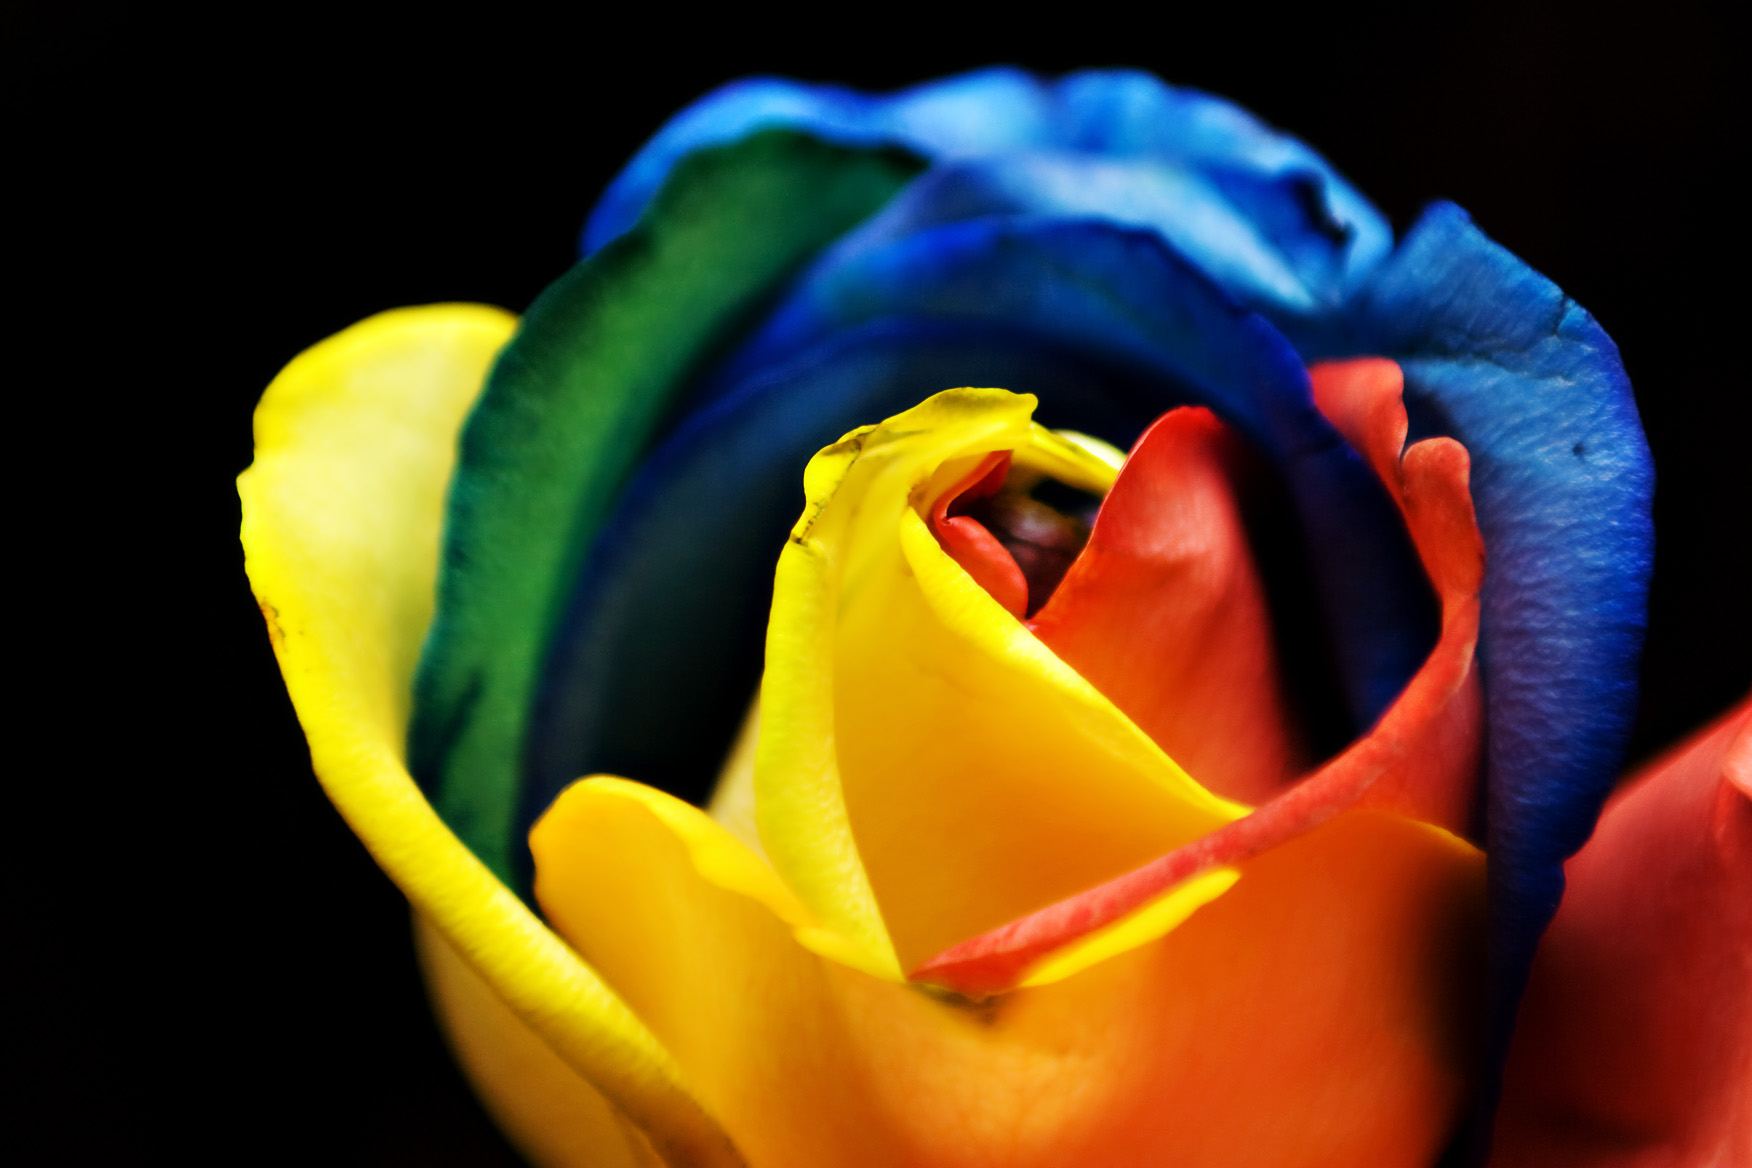 file rainbow rose 3366550029 jpg wikipedia